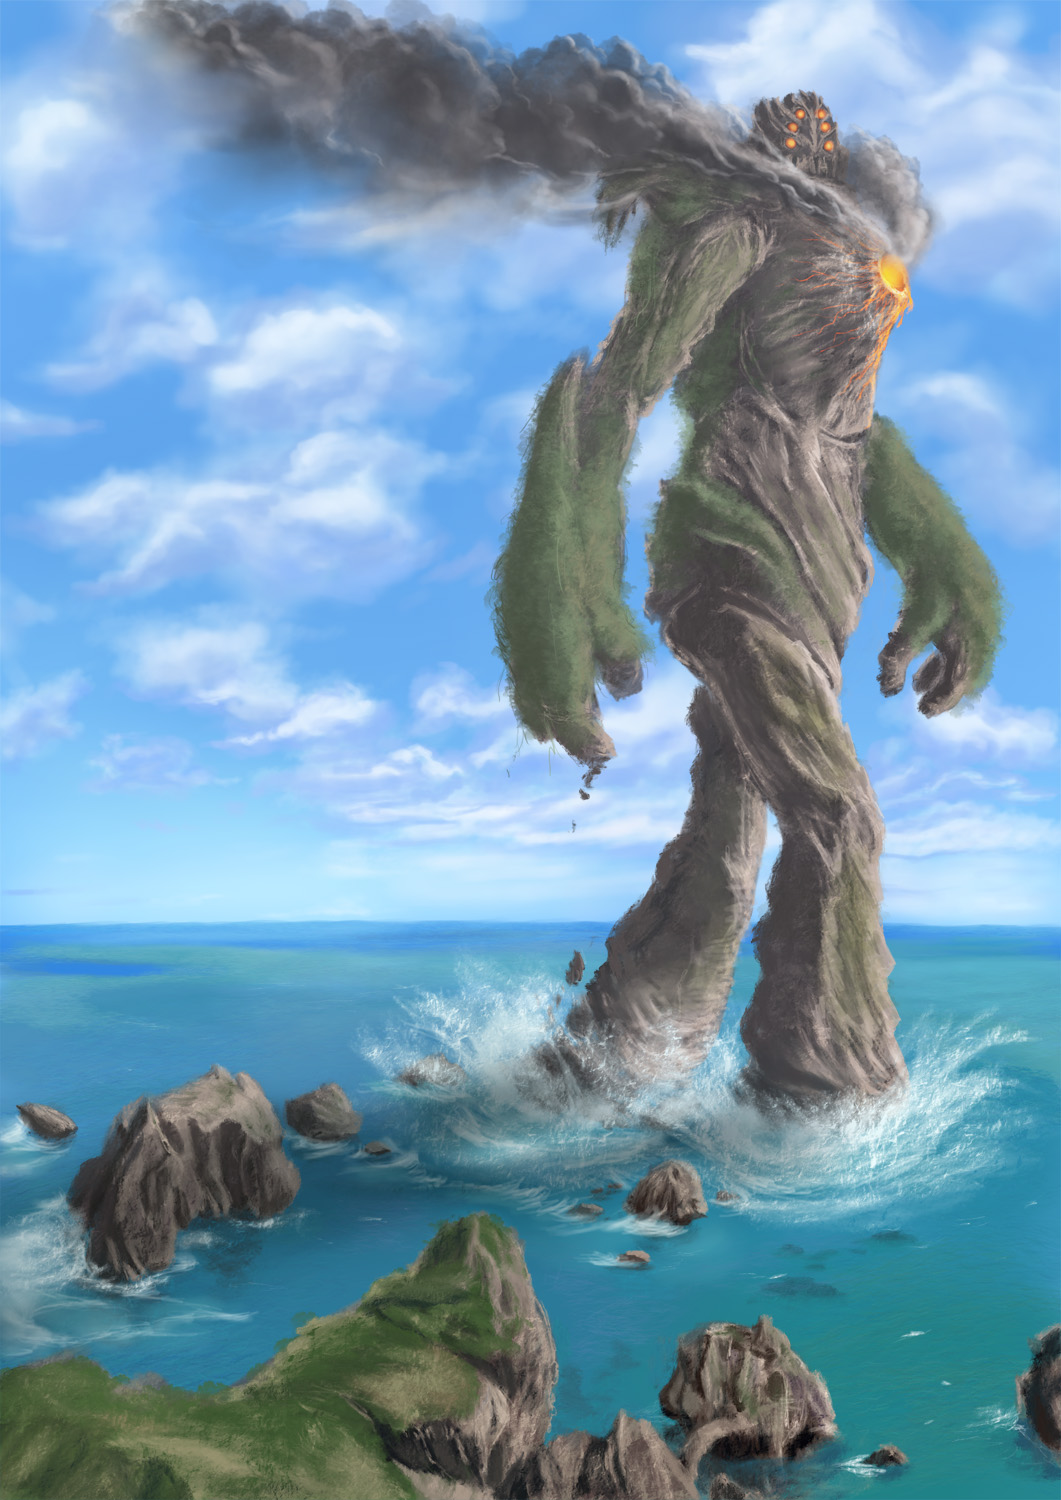 Earth Colossus by alecyl